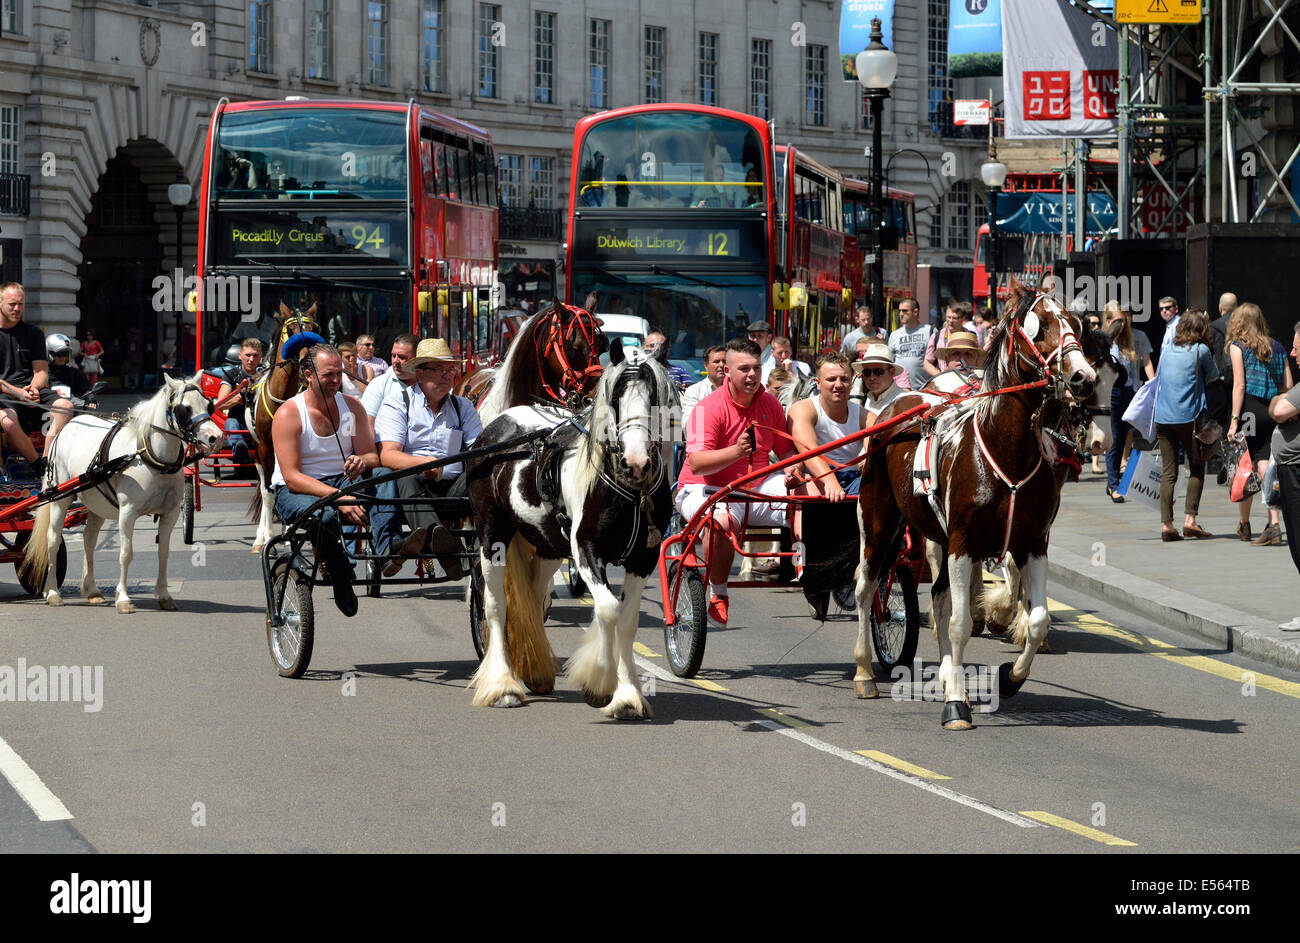 London, England, UK. Pony trotting carriages being driven down Regent Street - Stock Image